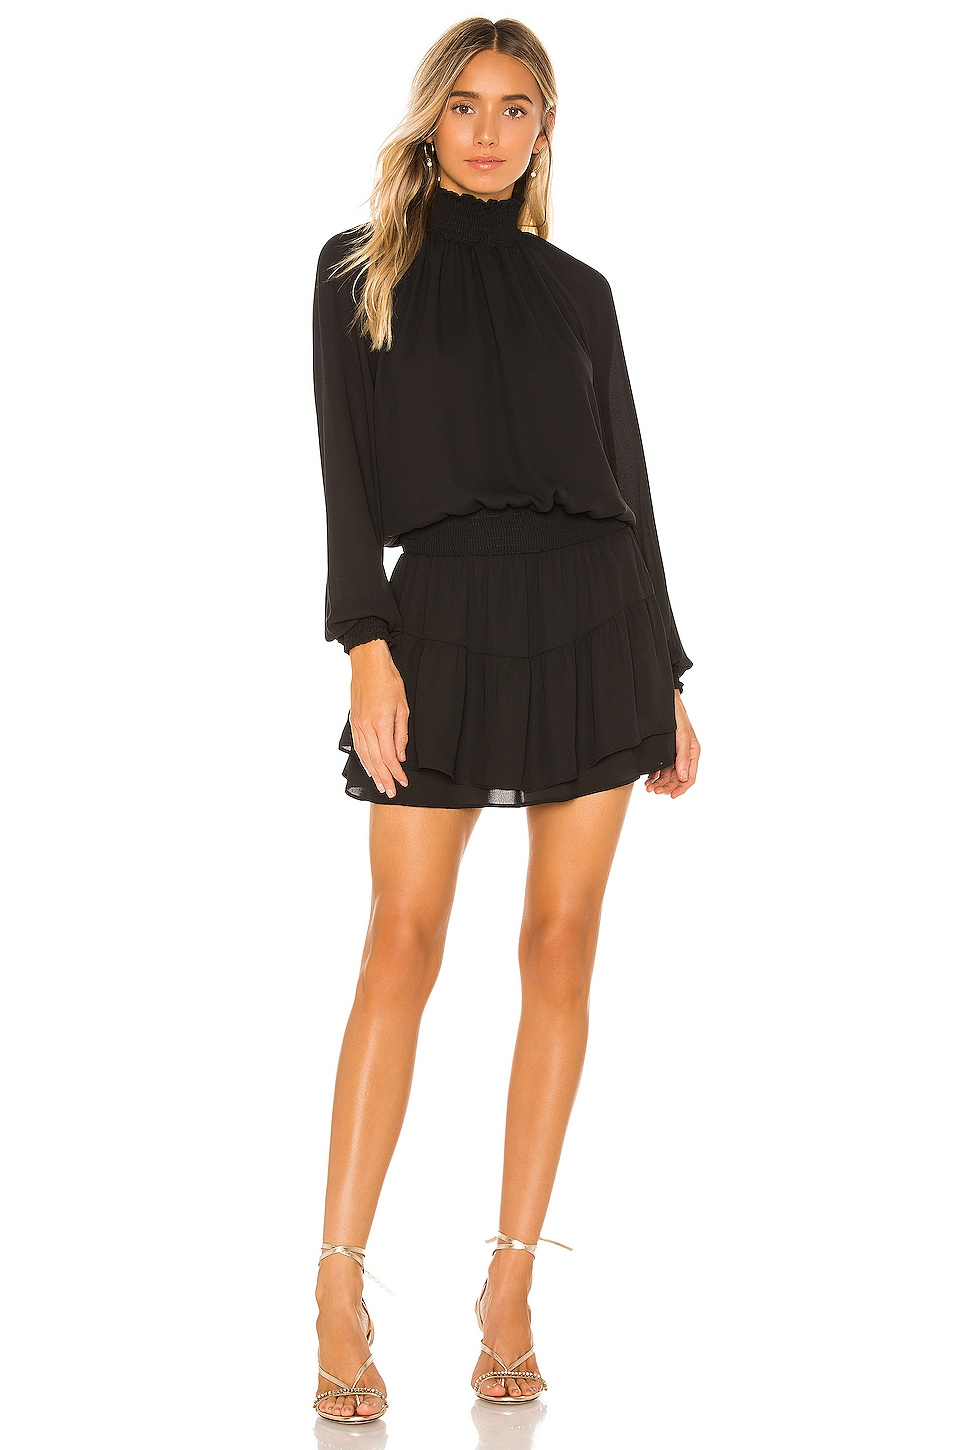 X REVOLVE Smocked Turtleneck Dress             krisa                                                                                                       CA$ 257.95 18